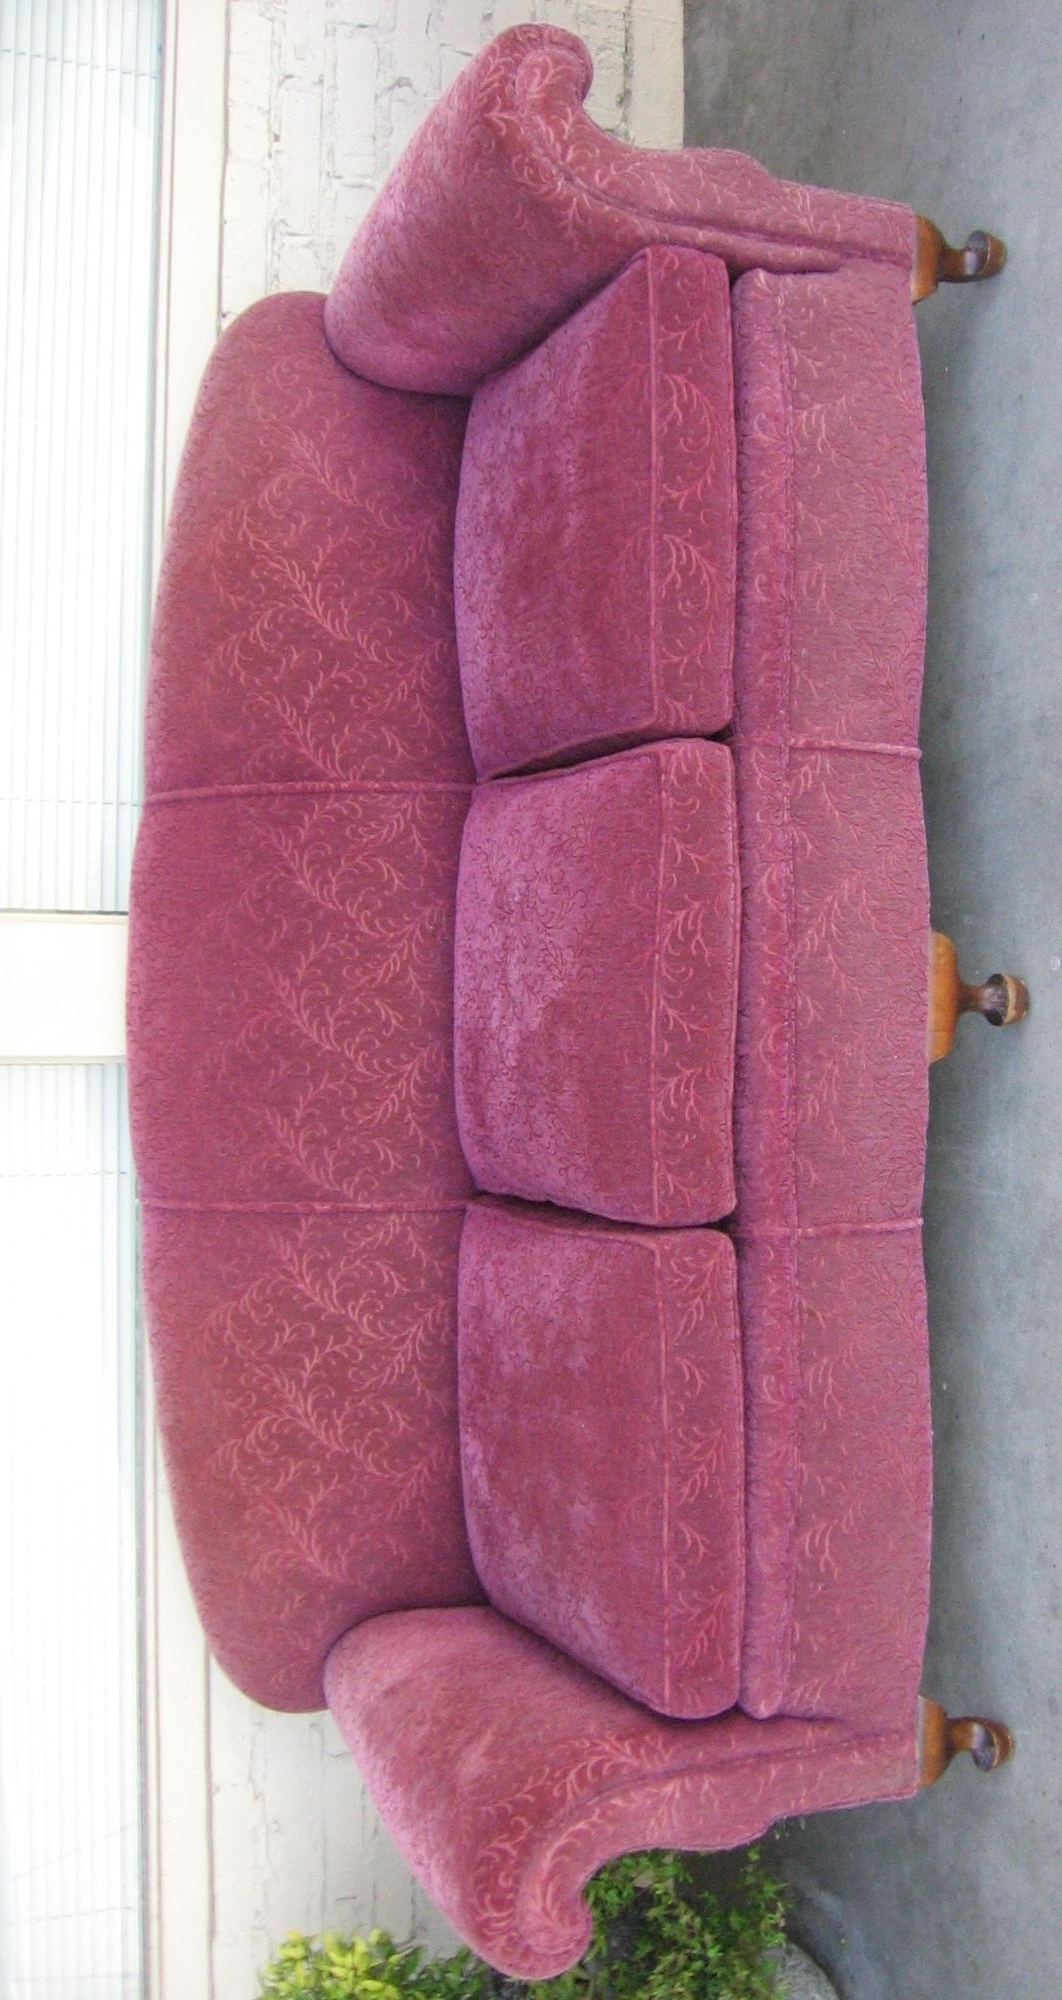 1930S Sofas Intended For Trendy 1930's Sofa Love The Curves:) Nylon Frieze (Frise') Fabric. 80 (Gallery 8 of 15)